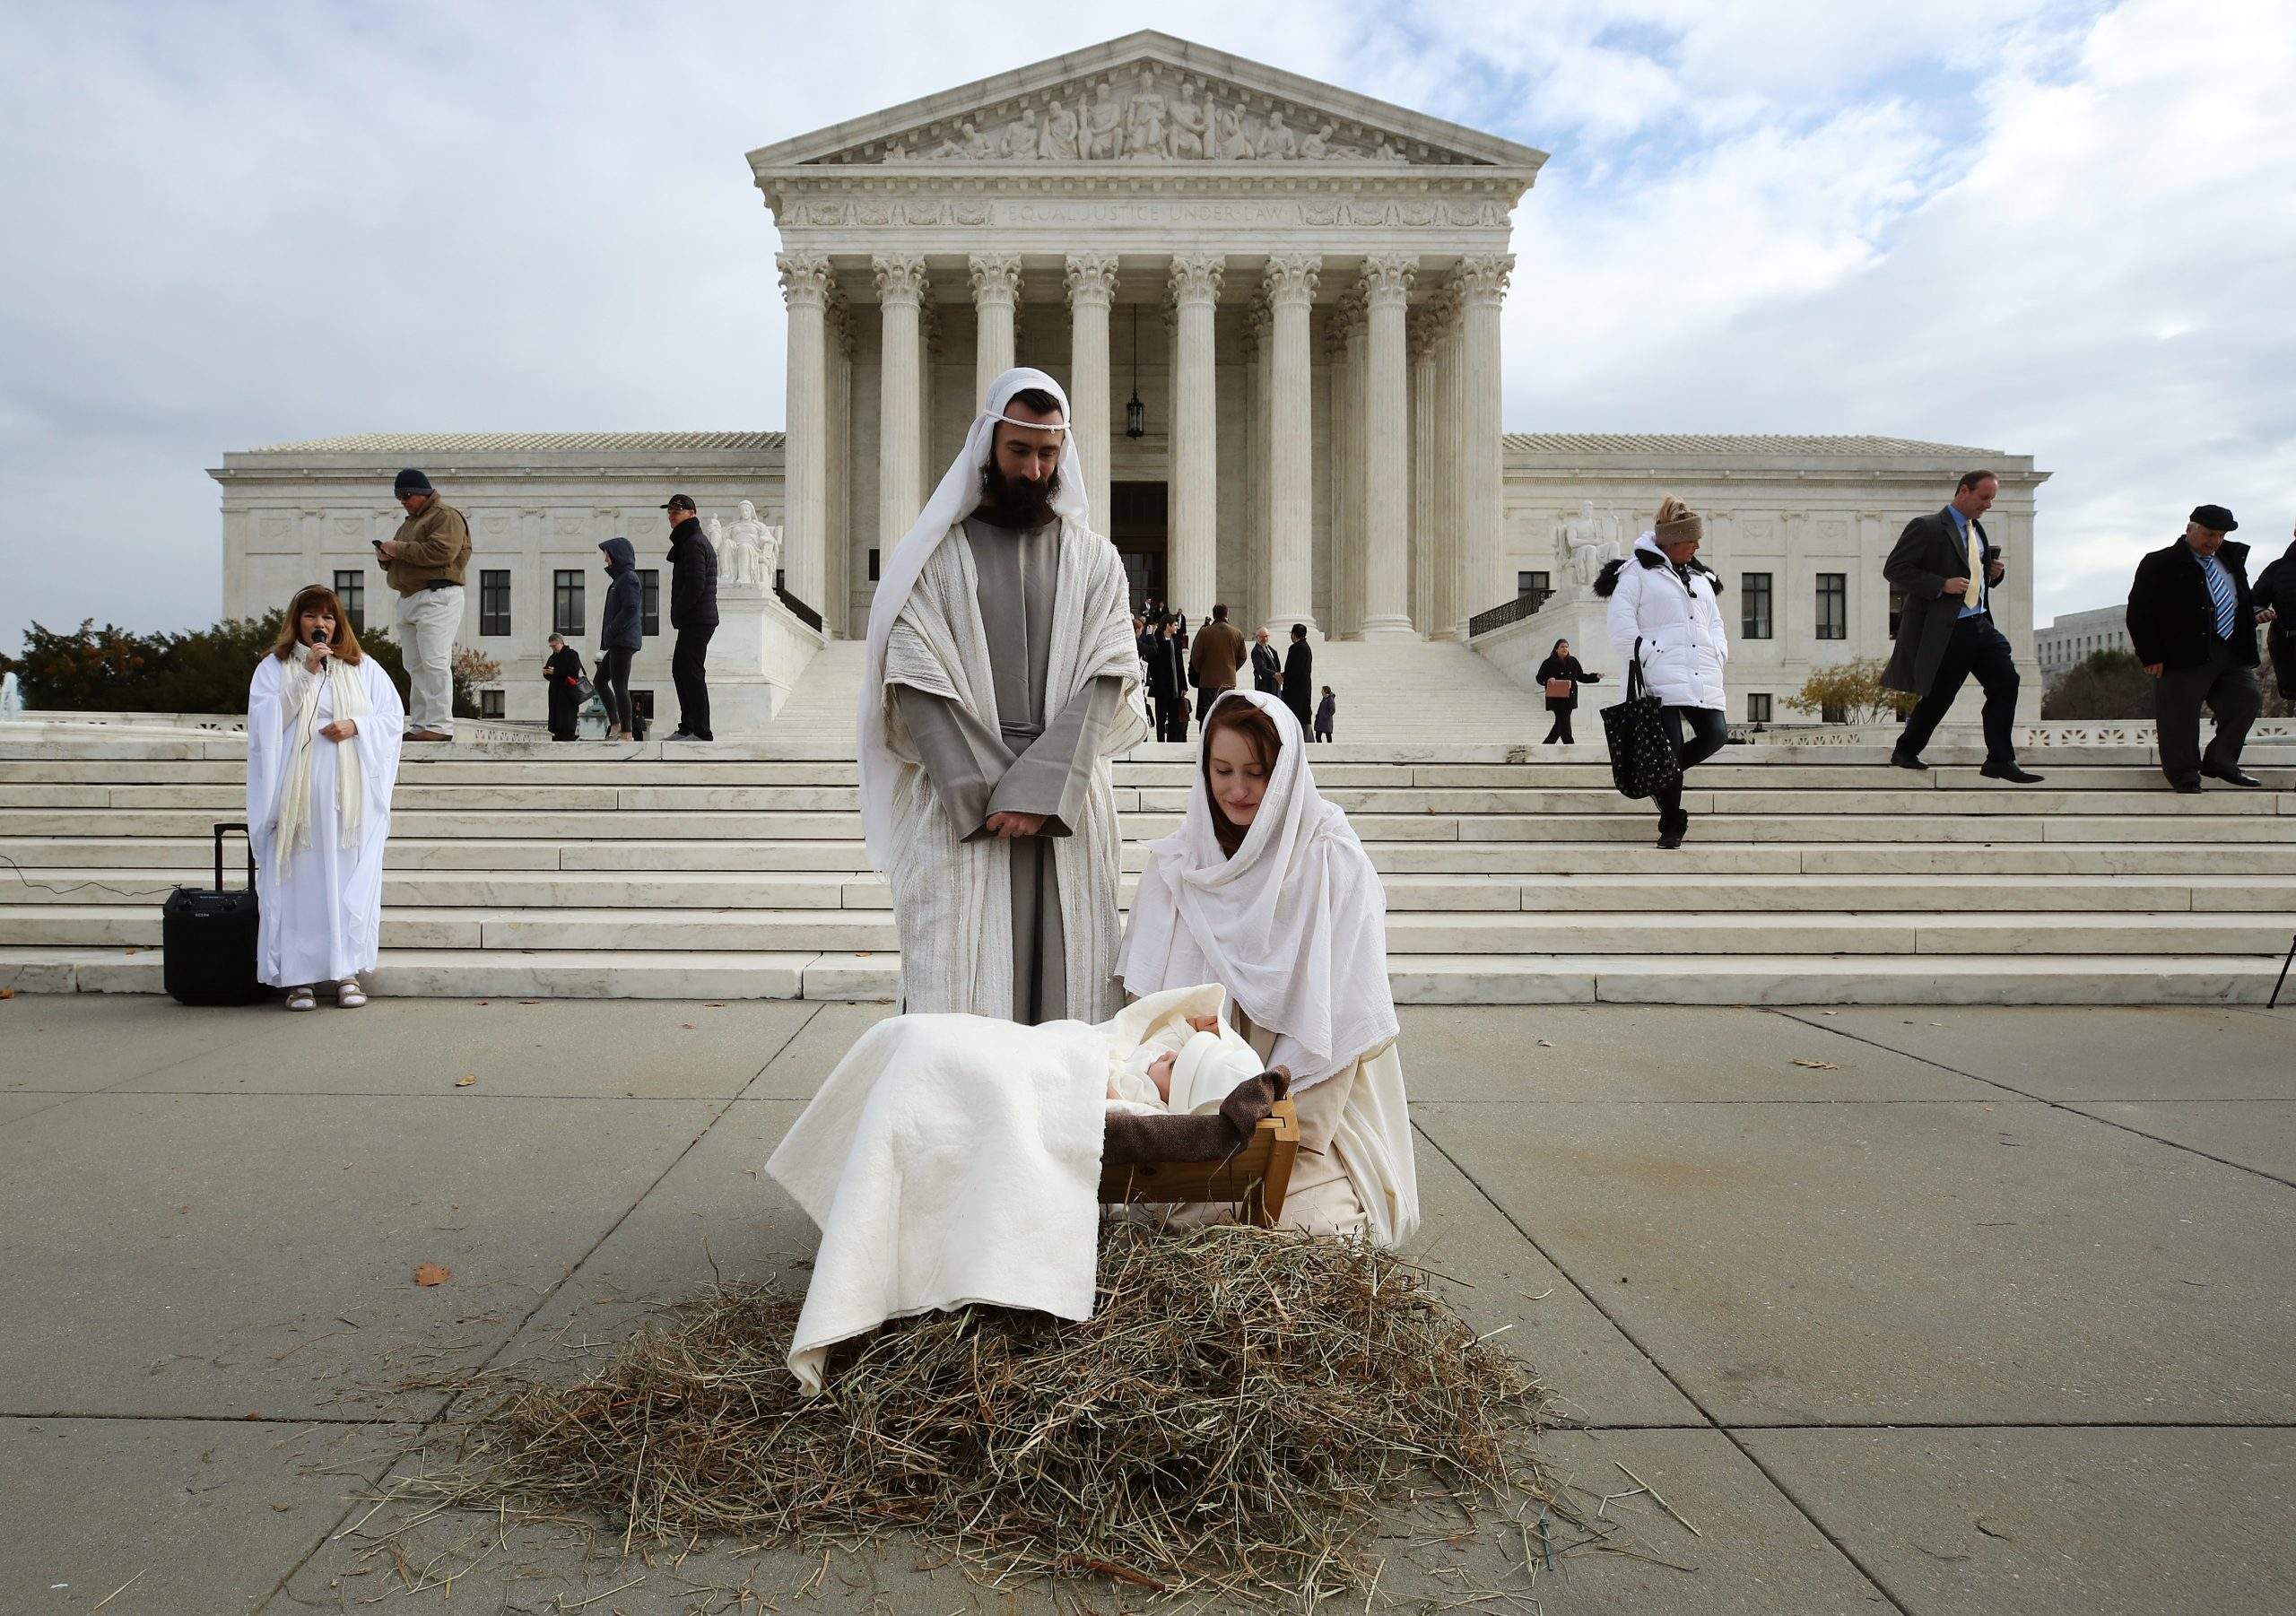 The Supreme Court docket's Non secular Persecution Advanced